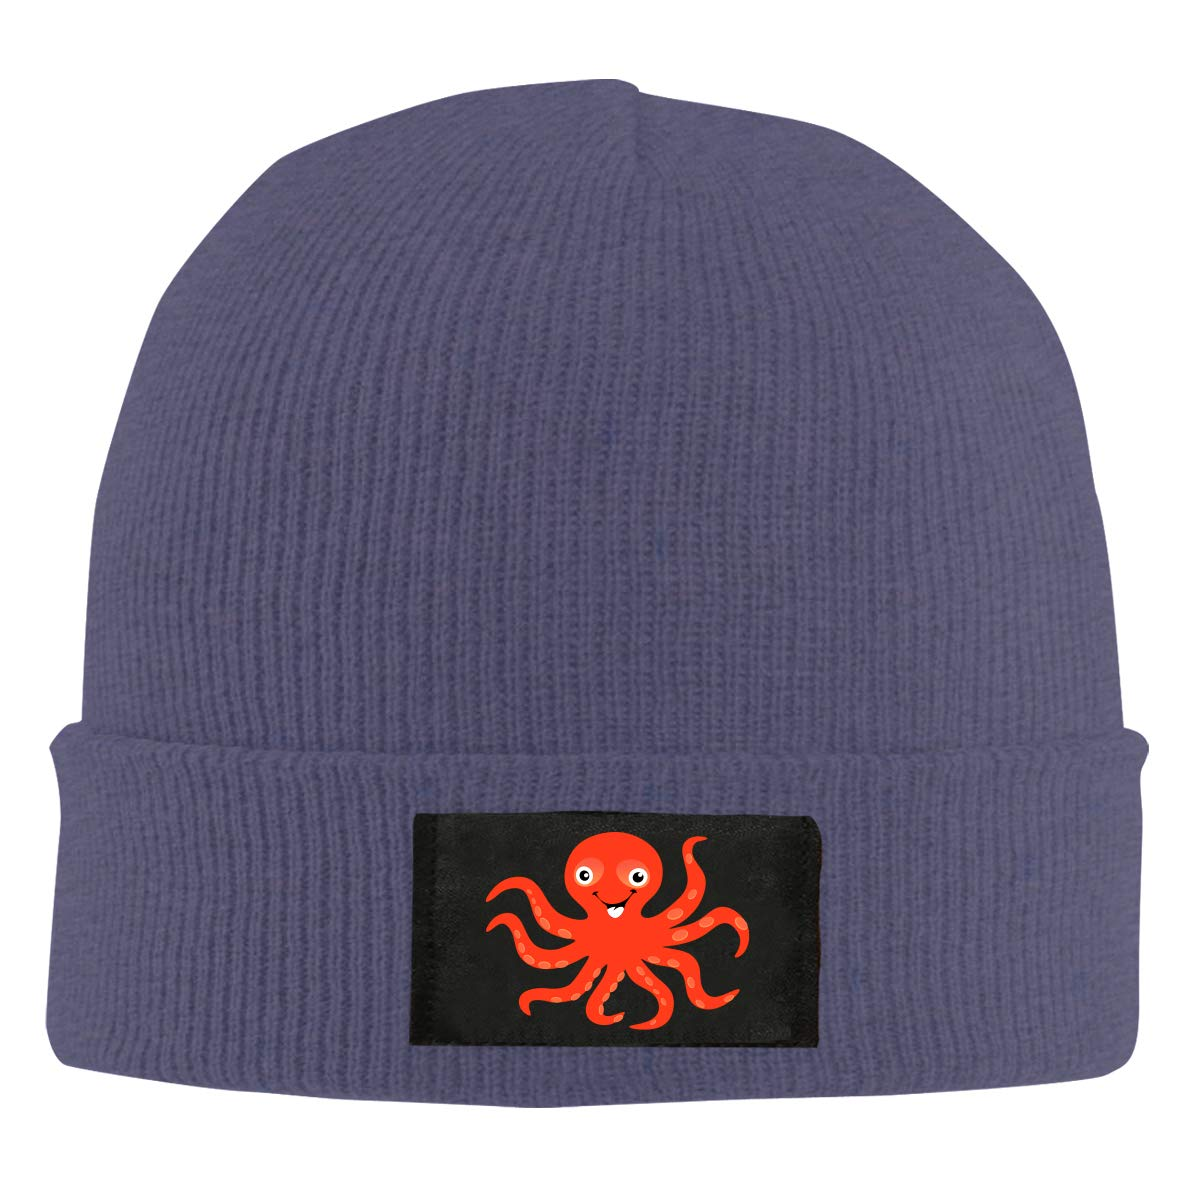 ASDGEGASFAS Unisex Octopus Cartoon Skull Cap Knit Wool Beanie Hat Stretchy Solid Daily Wear